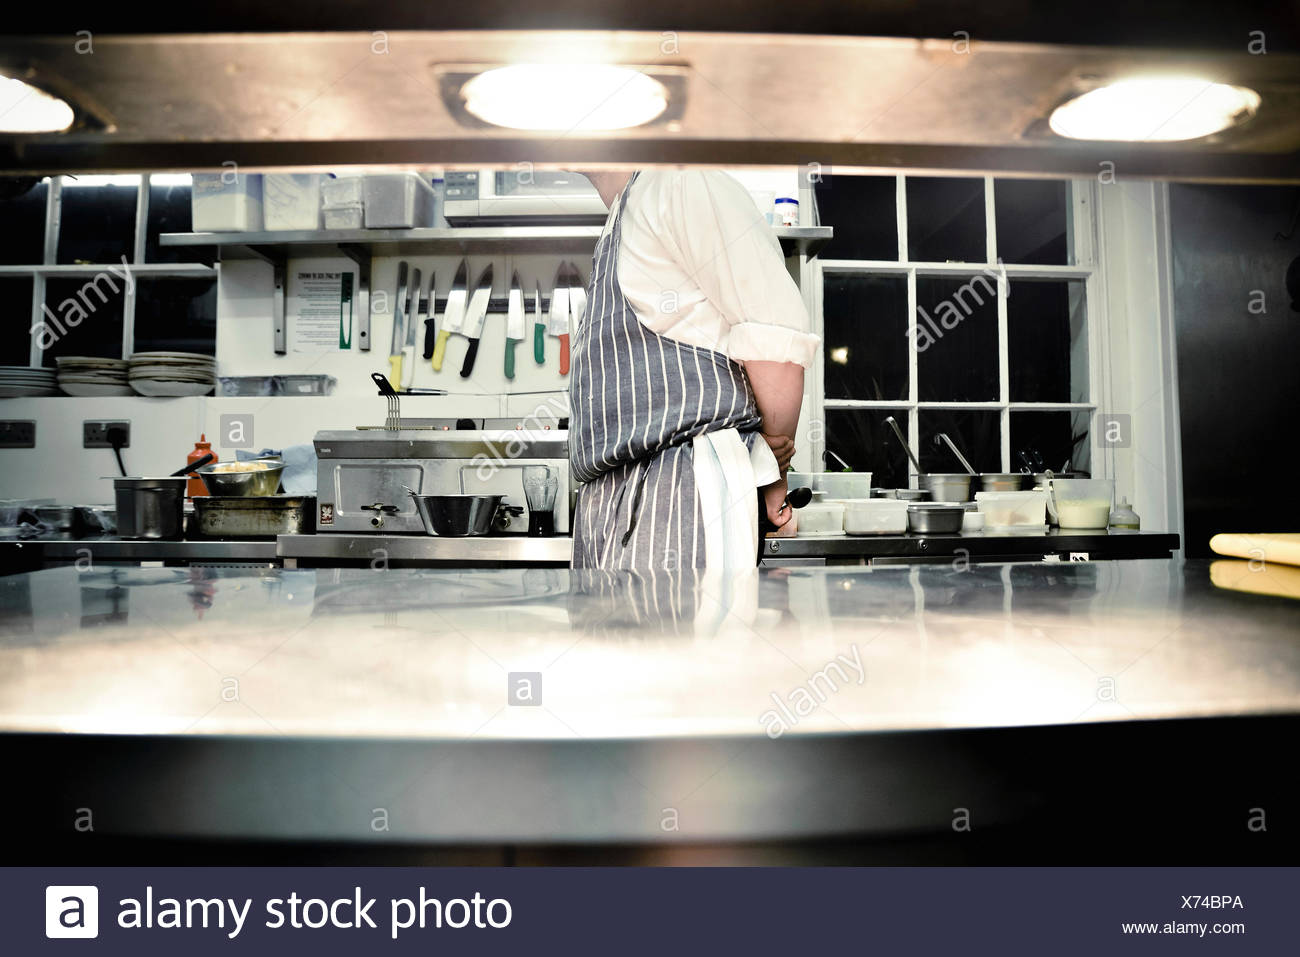 Chef standing in commercial kitchen - Stock Image